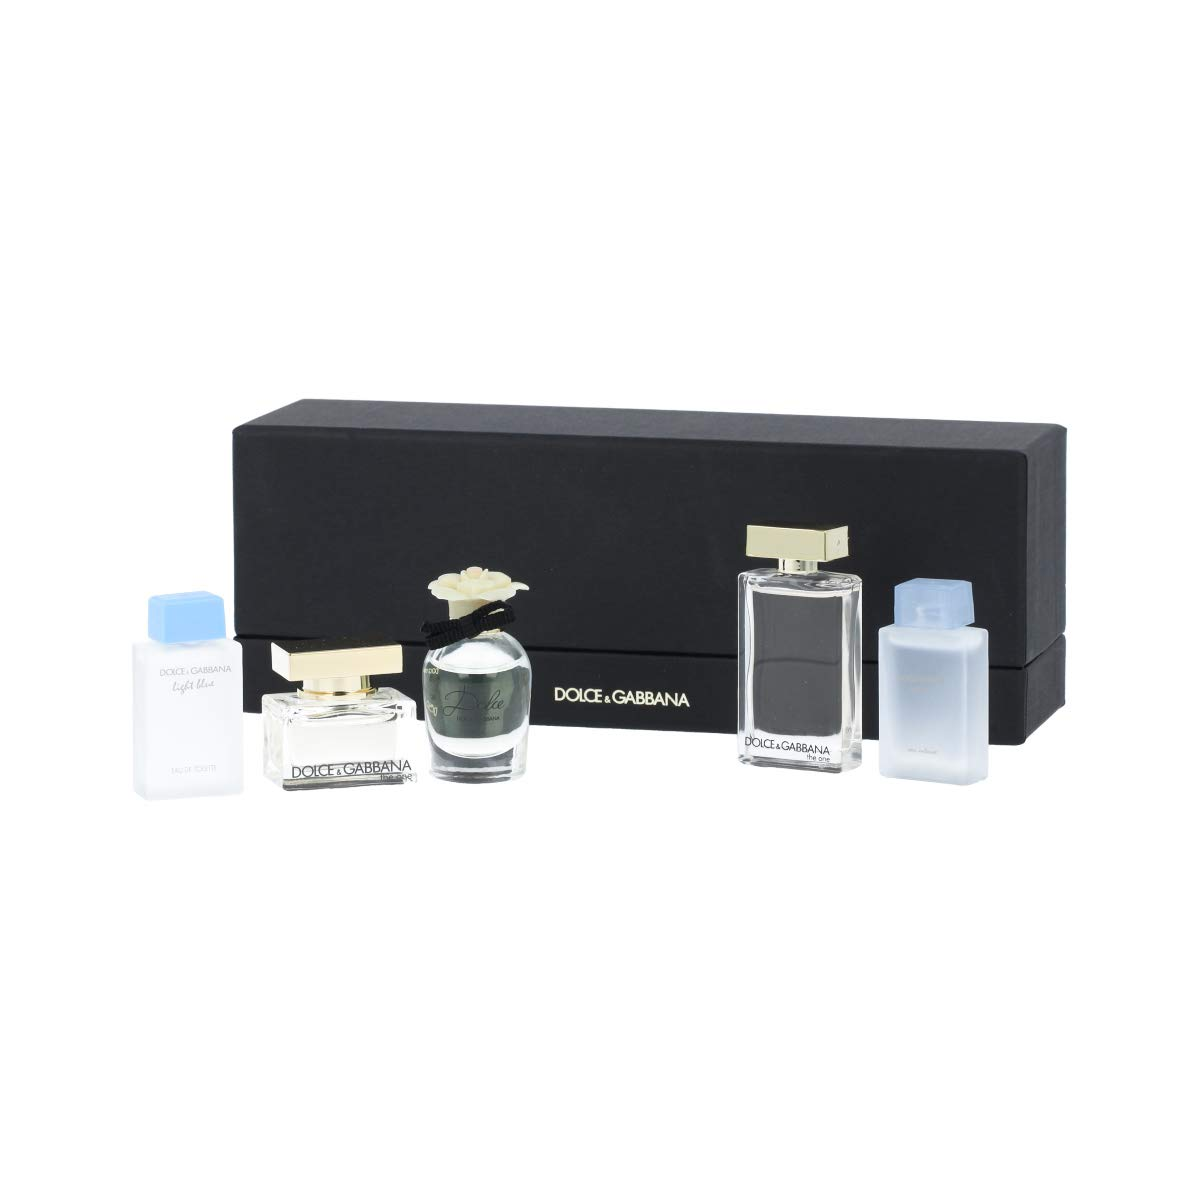 Dolce & Gabbana by Dolce & Gabbana, 5 Piece Mini Set for Women